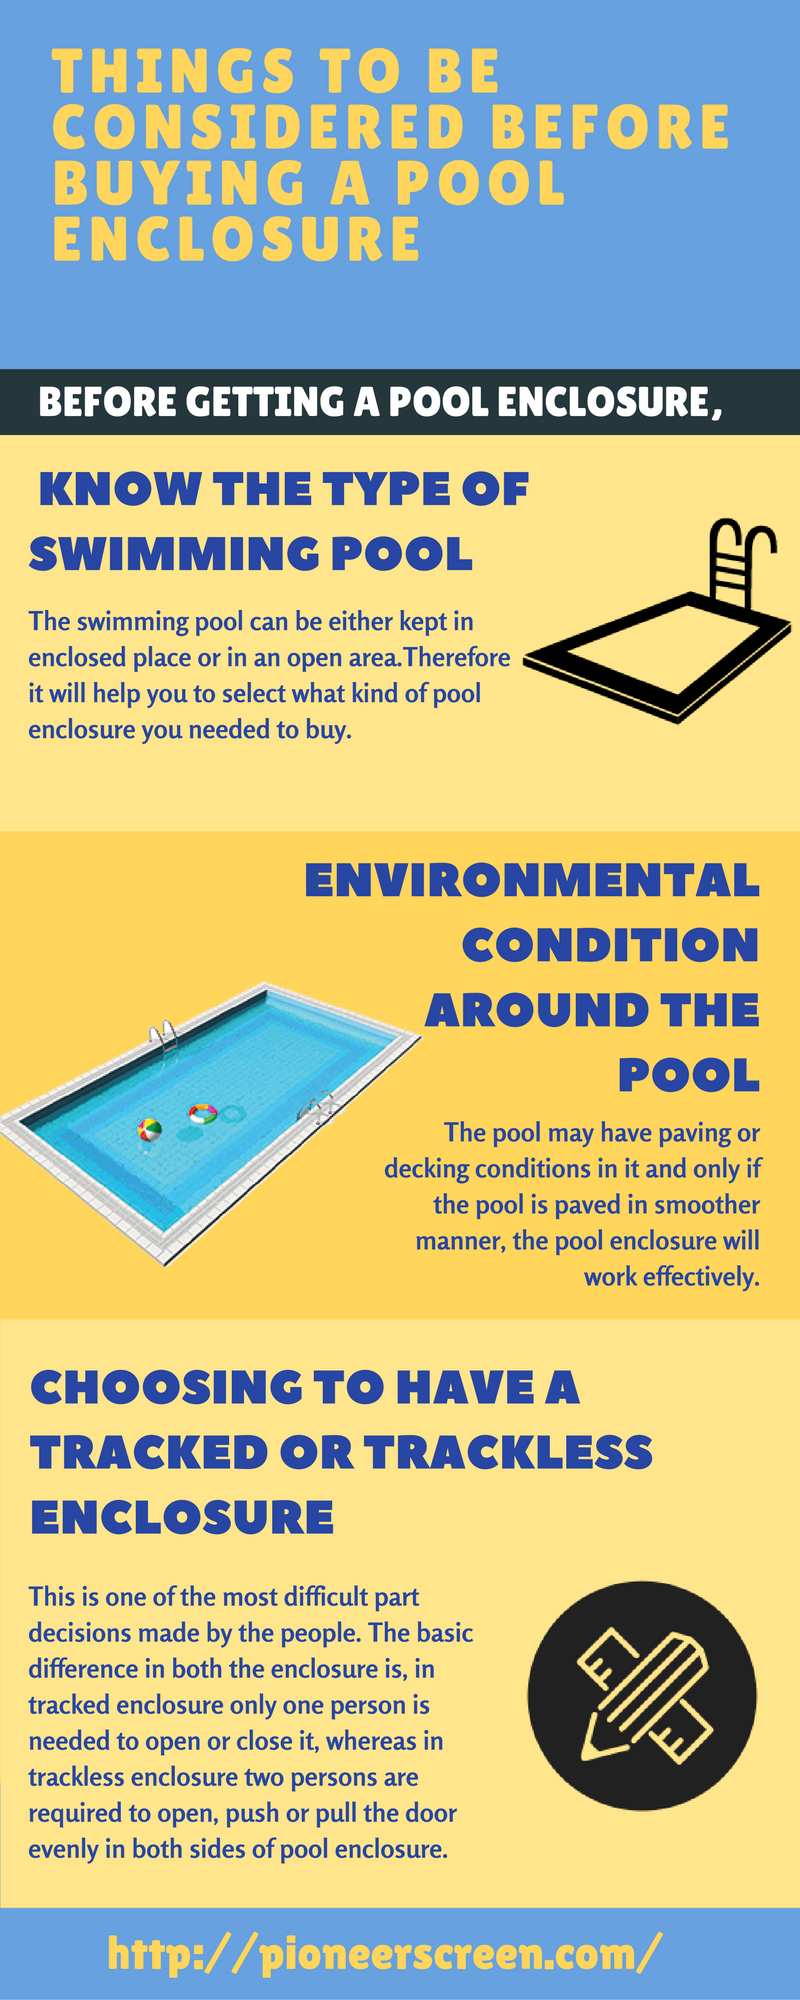 things-to-be-considered-before-buying-a-pool-enclosure-infographic-plaza